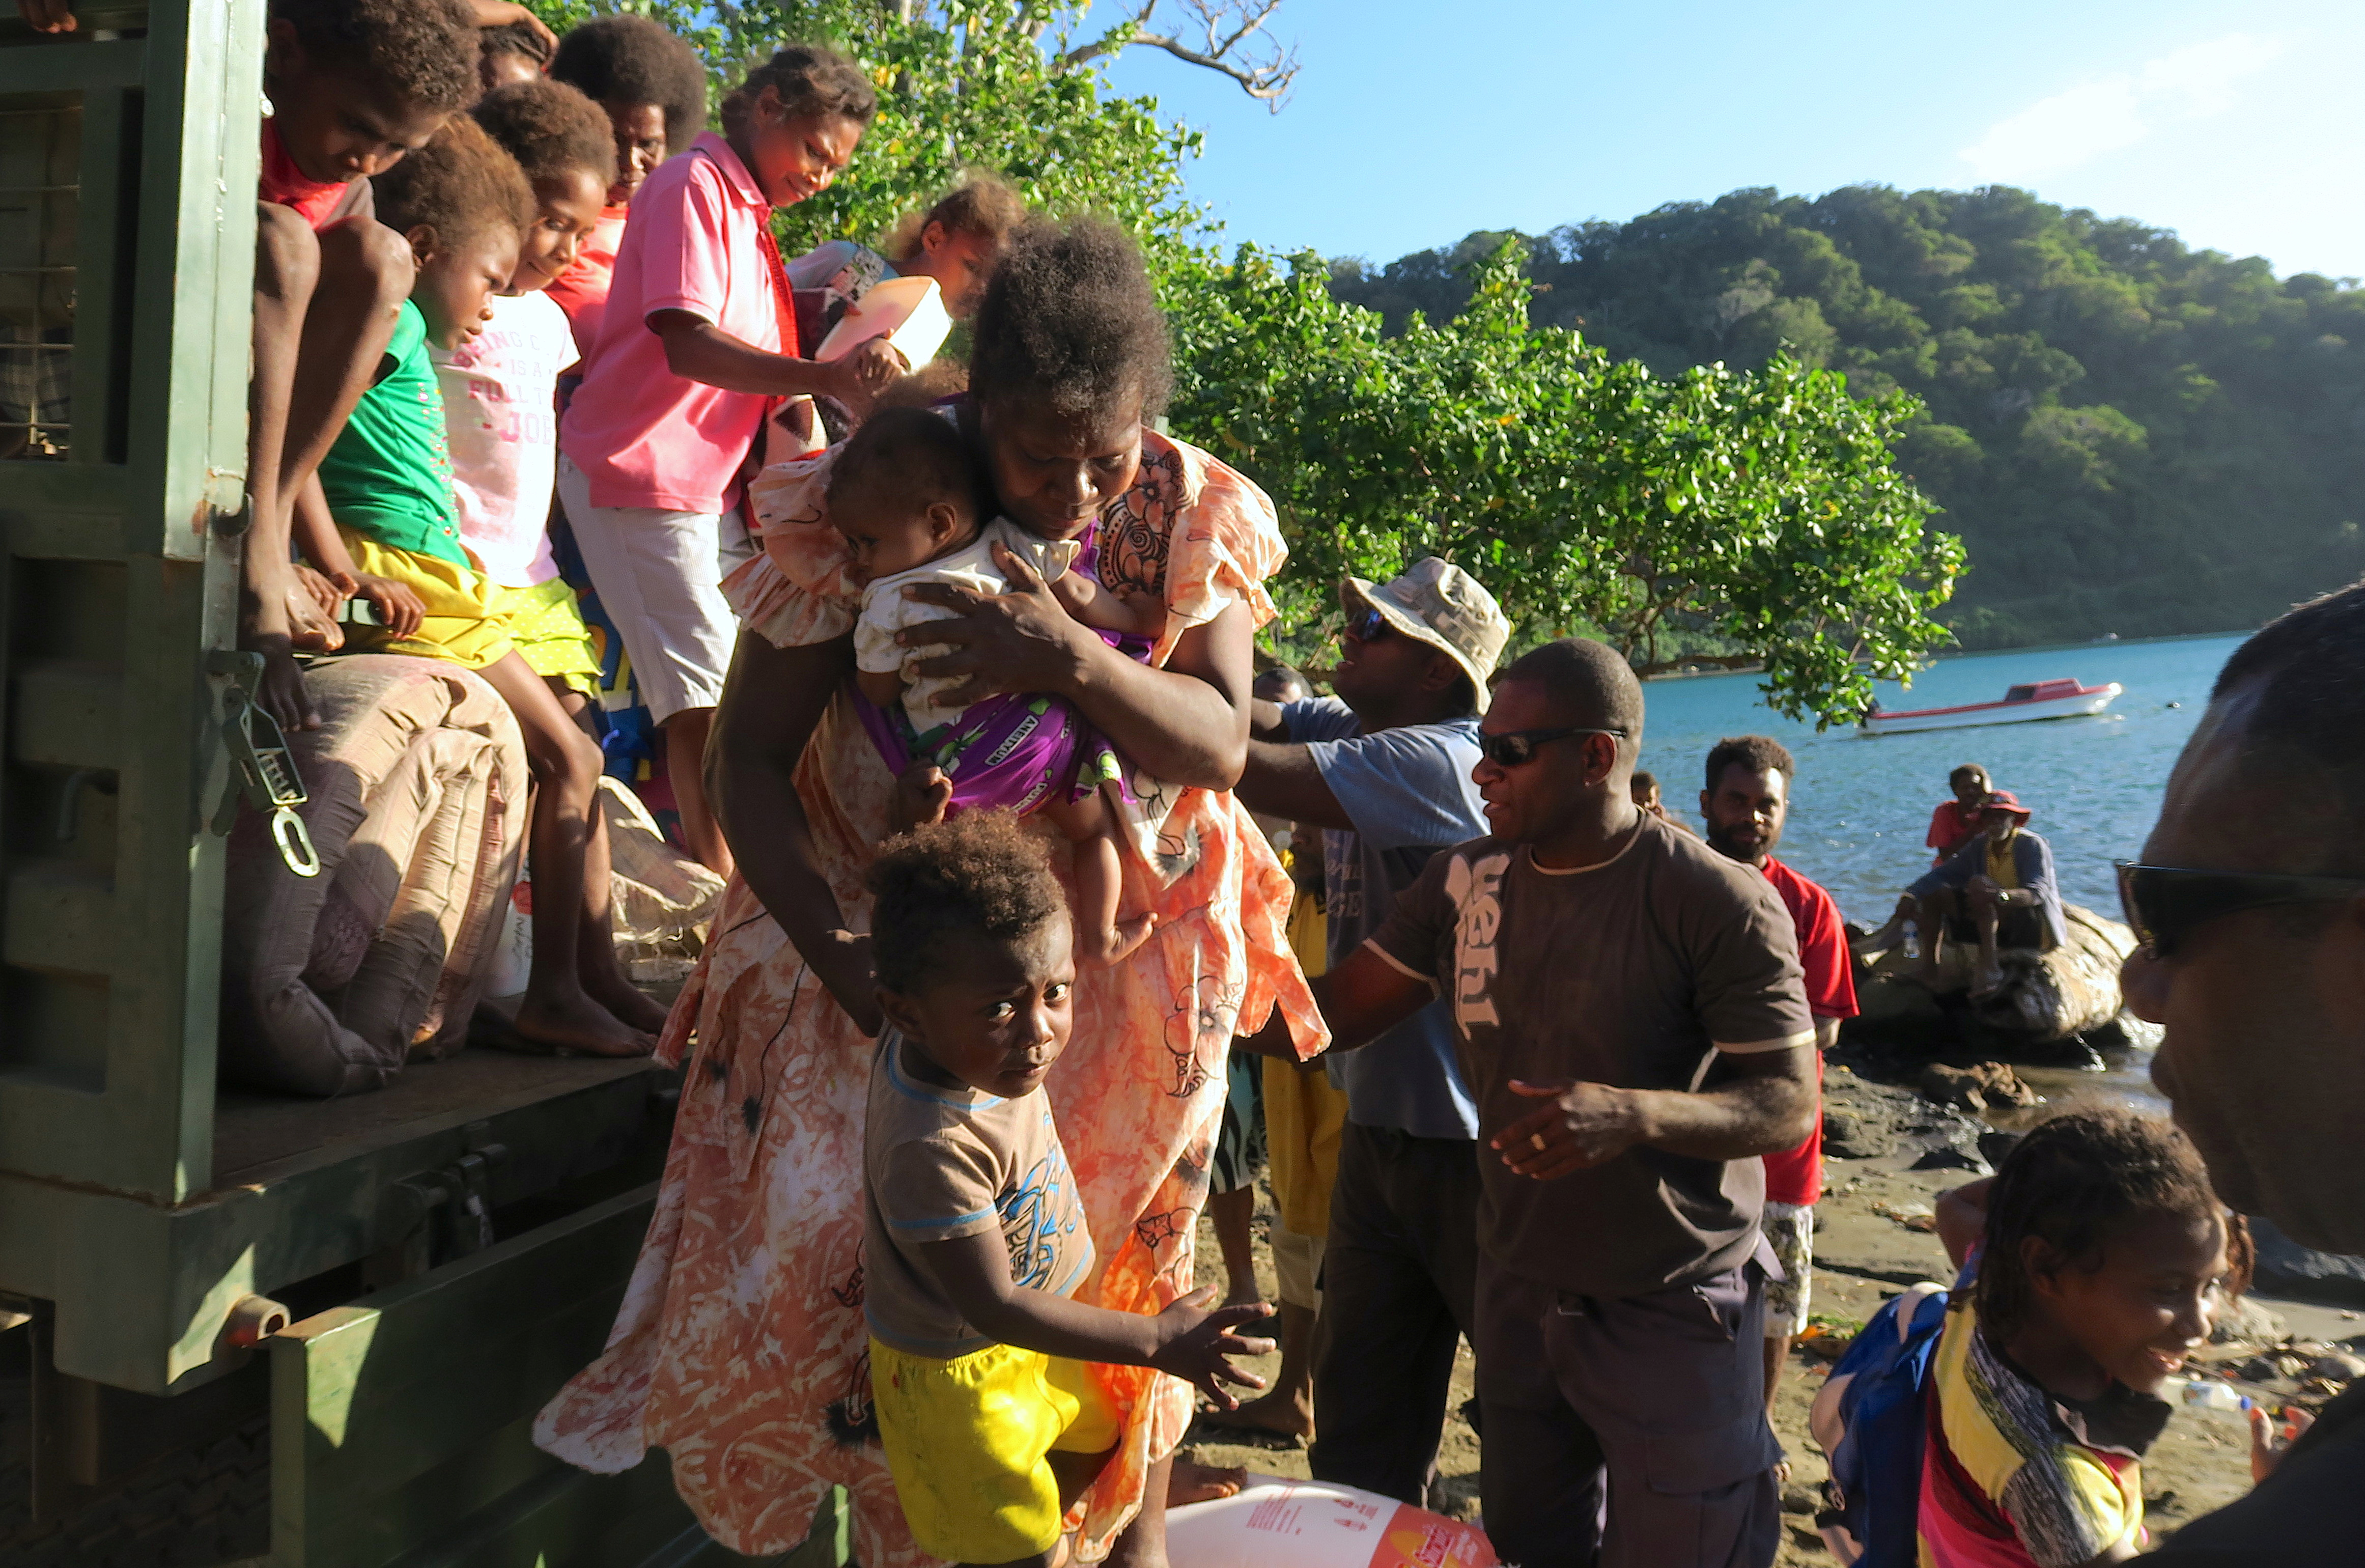 Residents carry their possessions as they prepare to board a boat at Lolowai Port as they evacuate due to the Manaro Voui volcano continuing to emenate smoke and ash on Vanuatu's northern island of Ambae in the South Pacific, October 1, 2017. Picture taken October 1, 2017.    REUTERS/Ben Bohane - RC1B9BEB6BC0